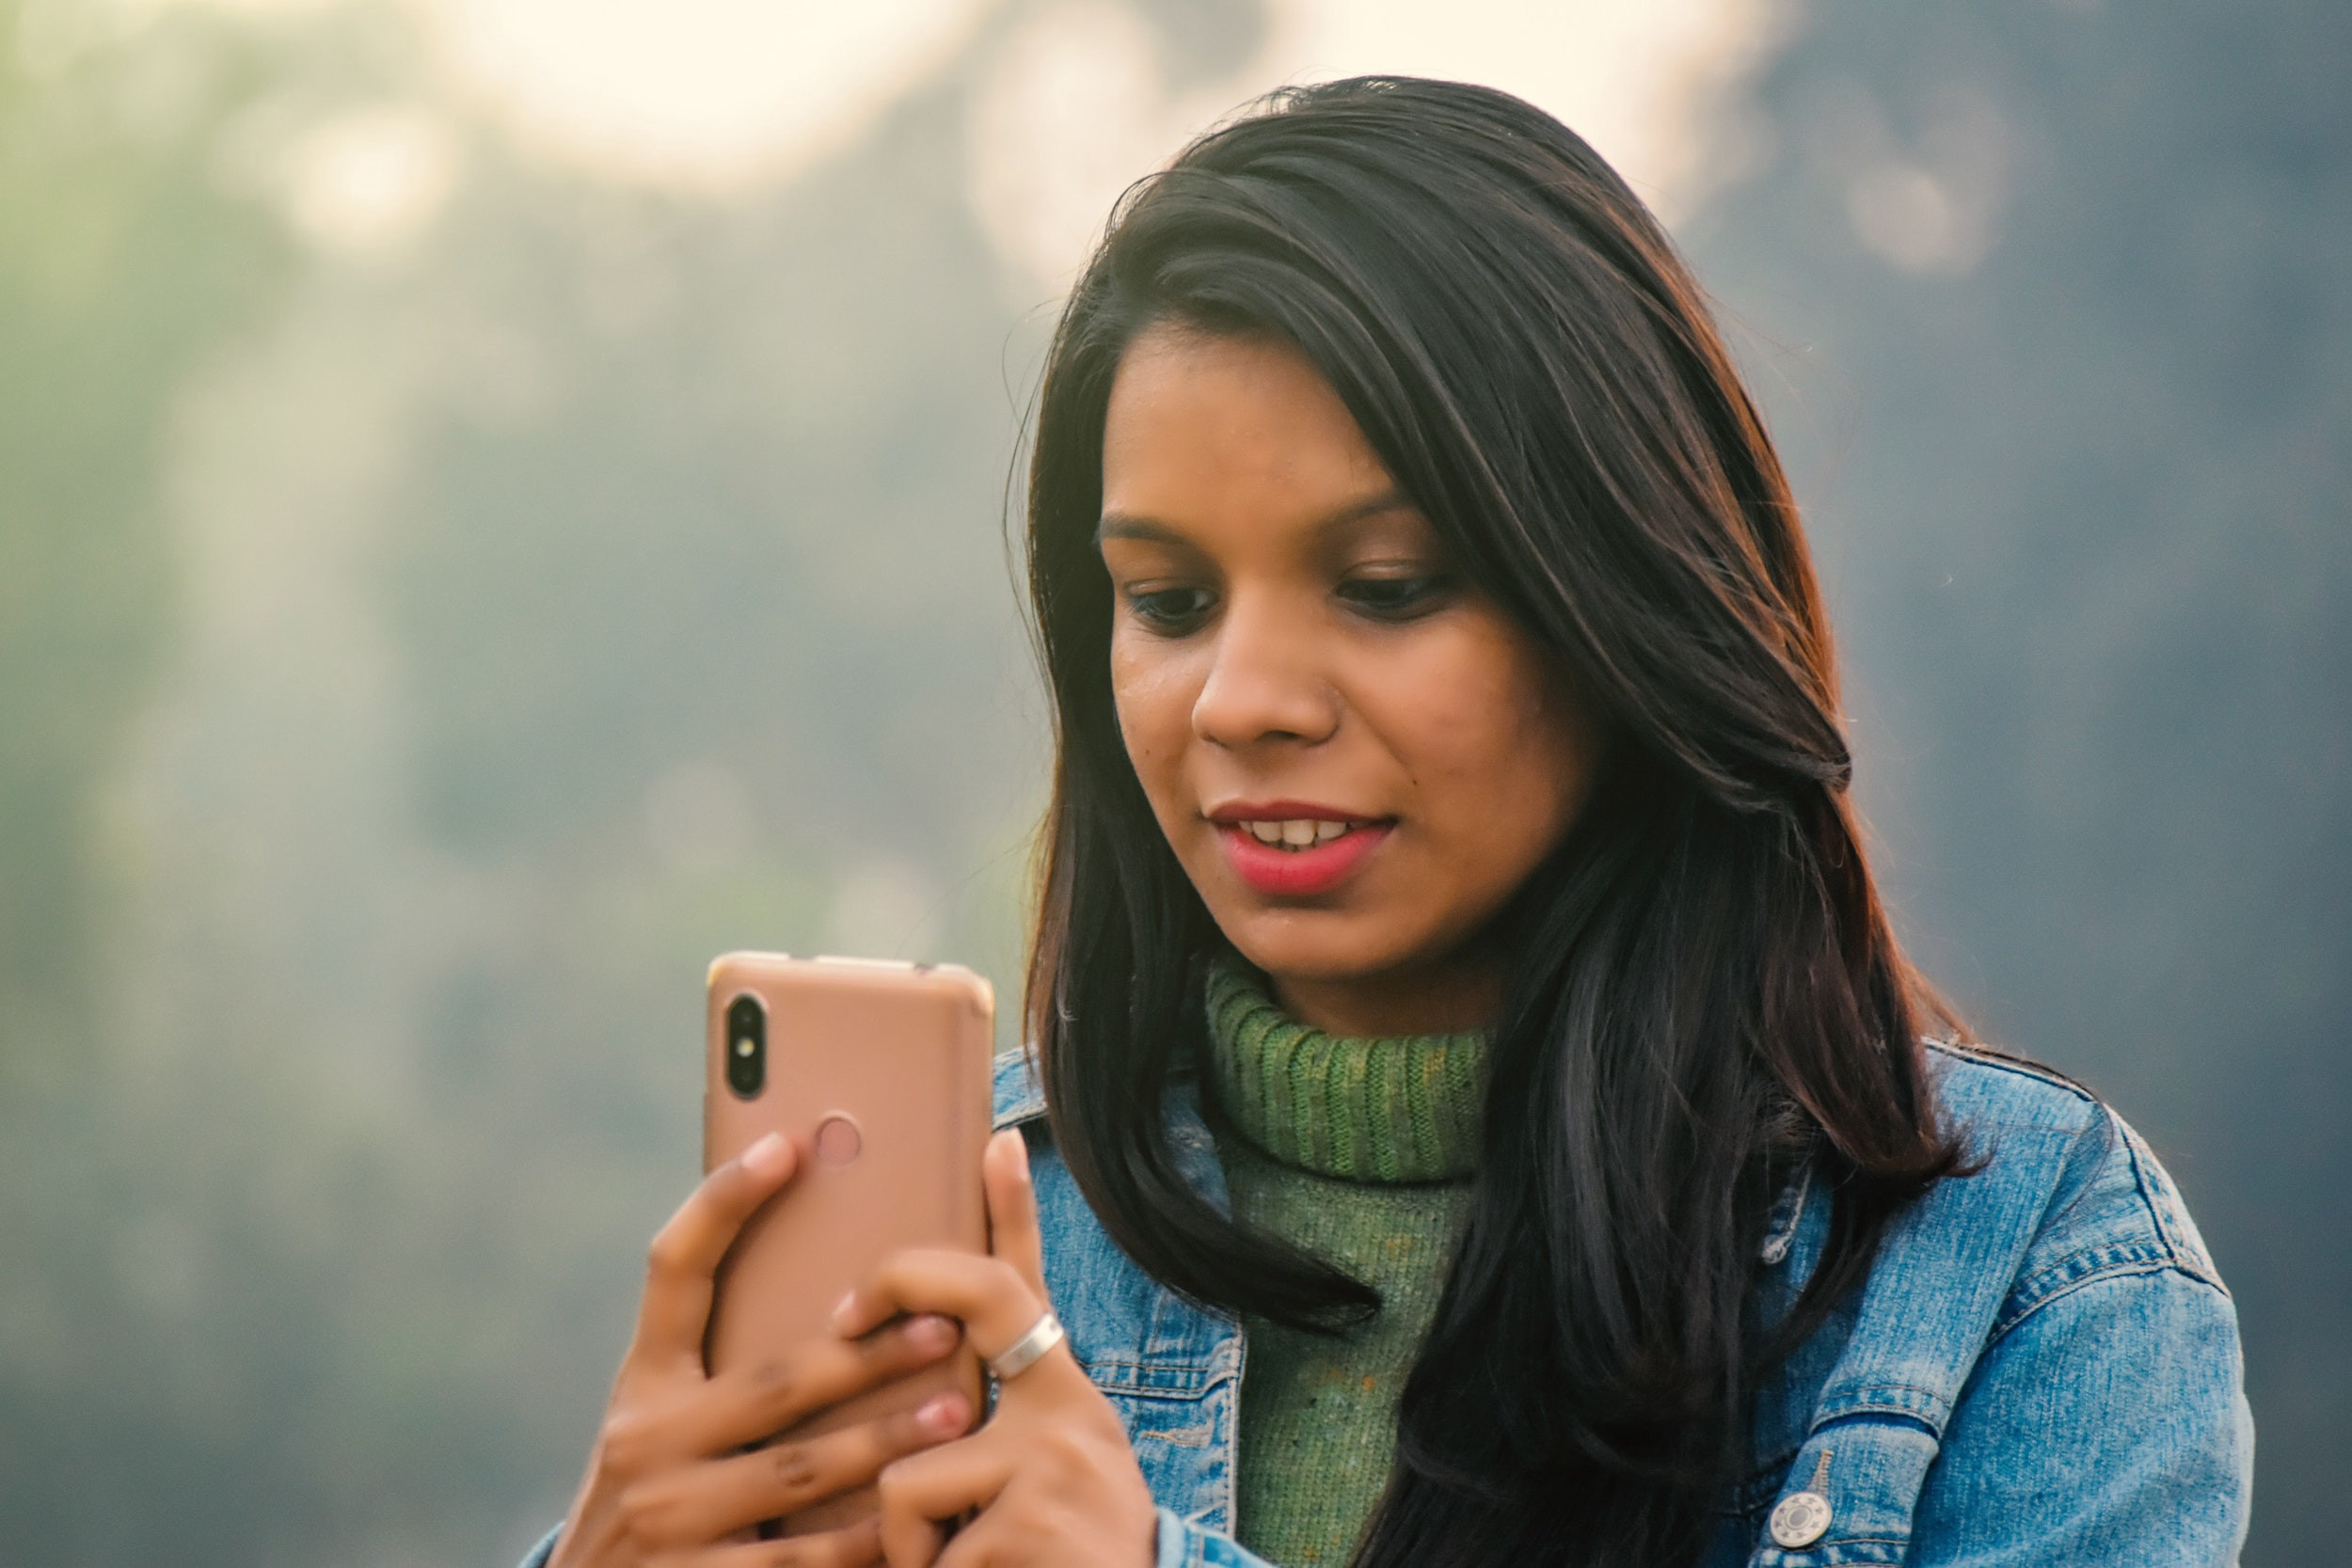 Woman looks at her phone with a pleasant expression